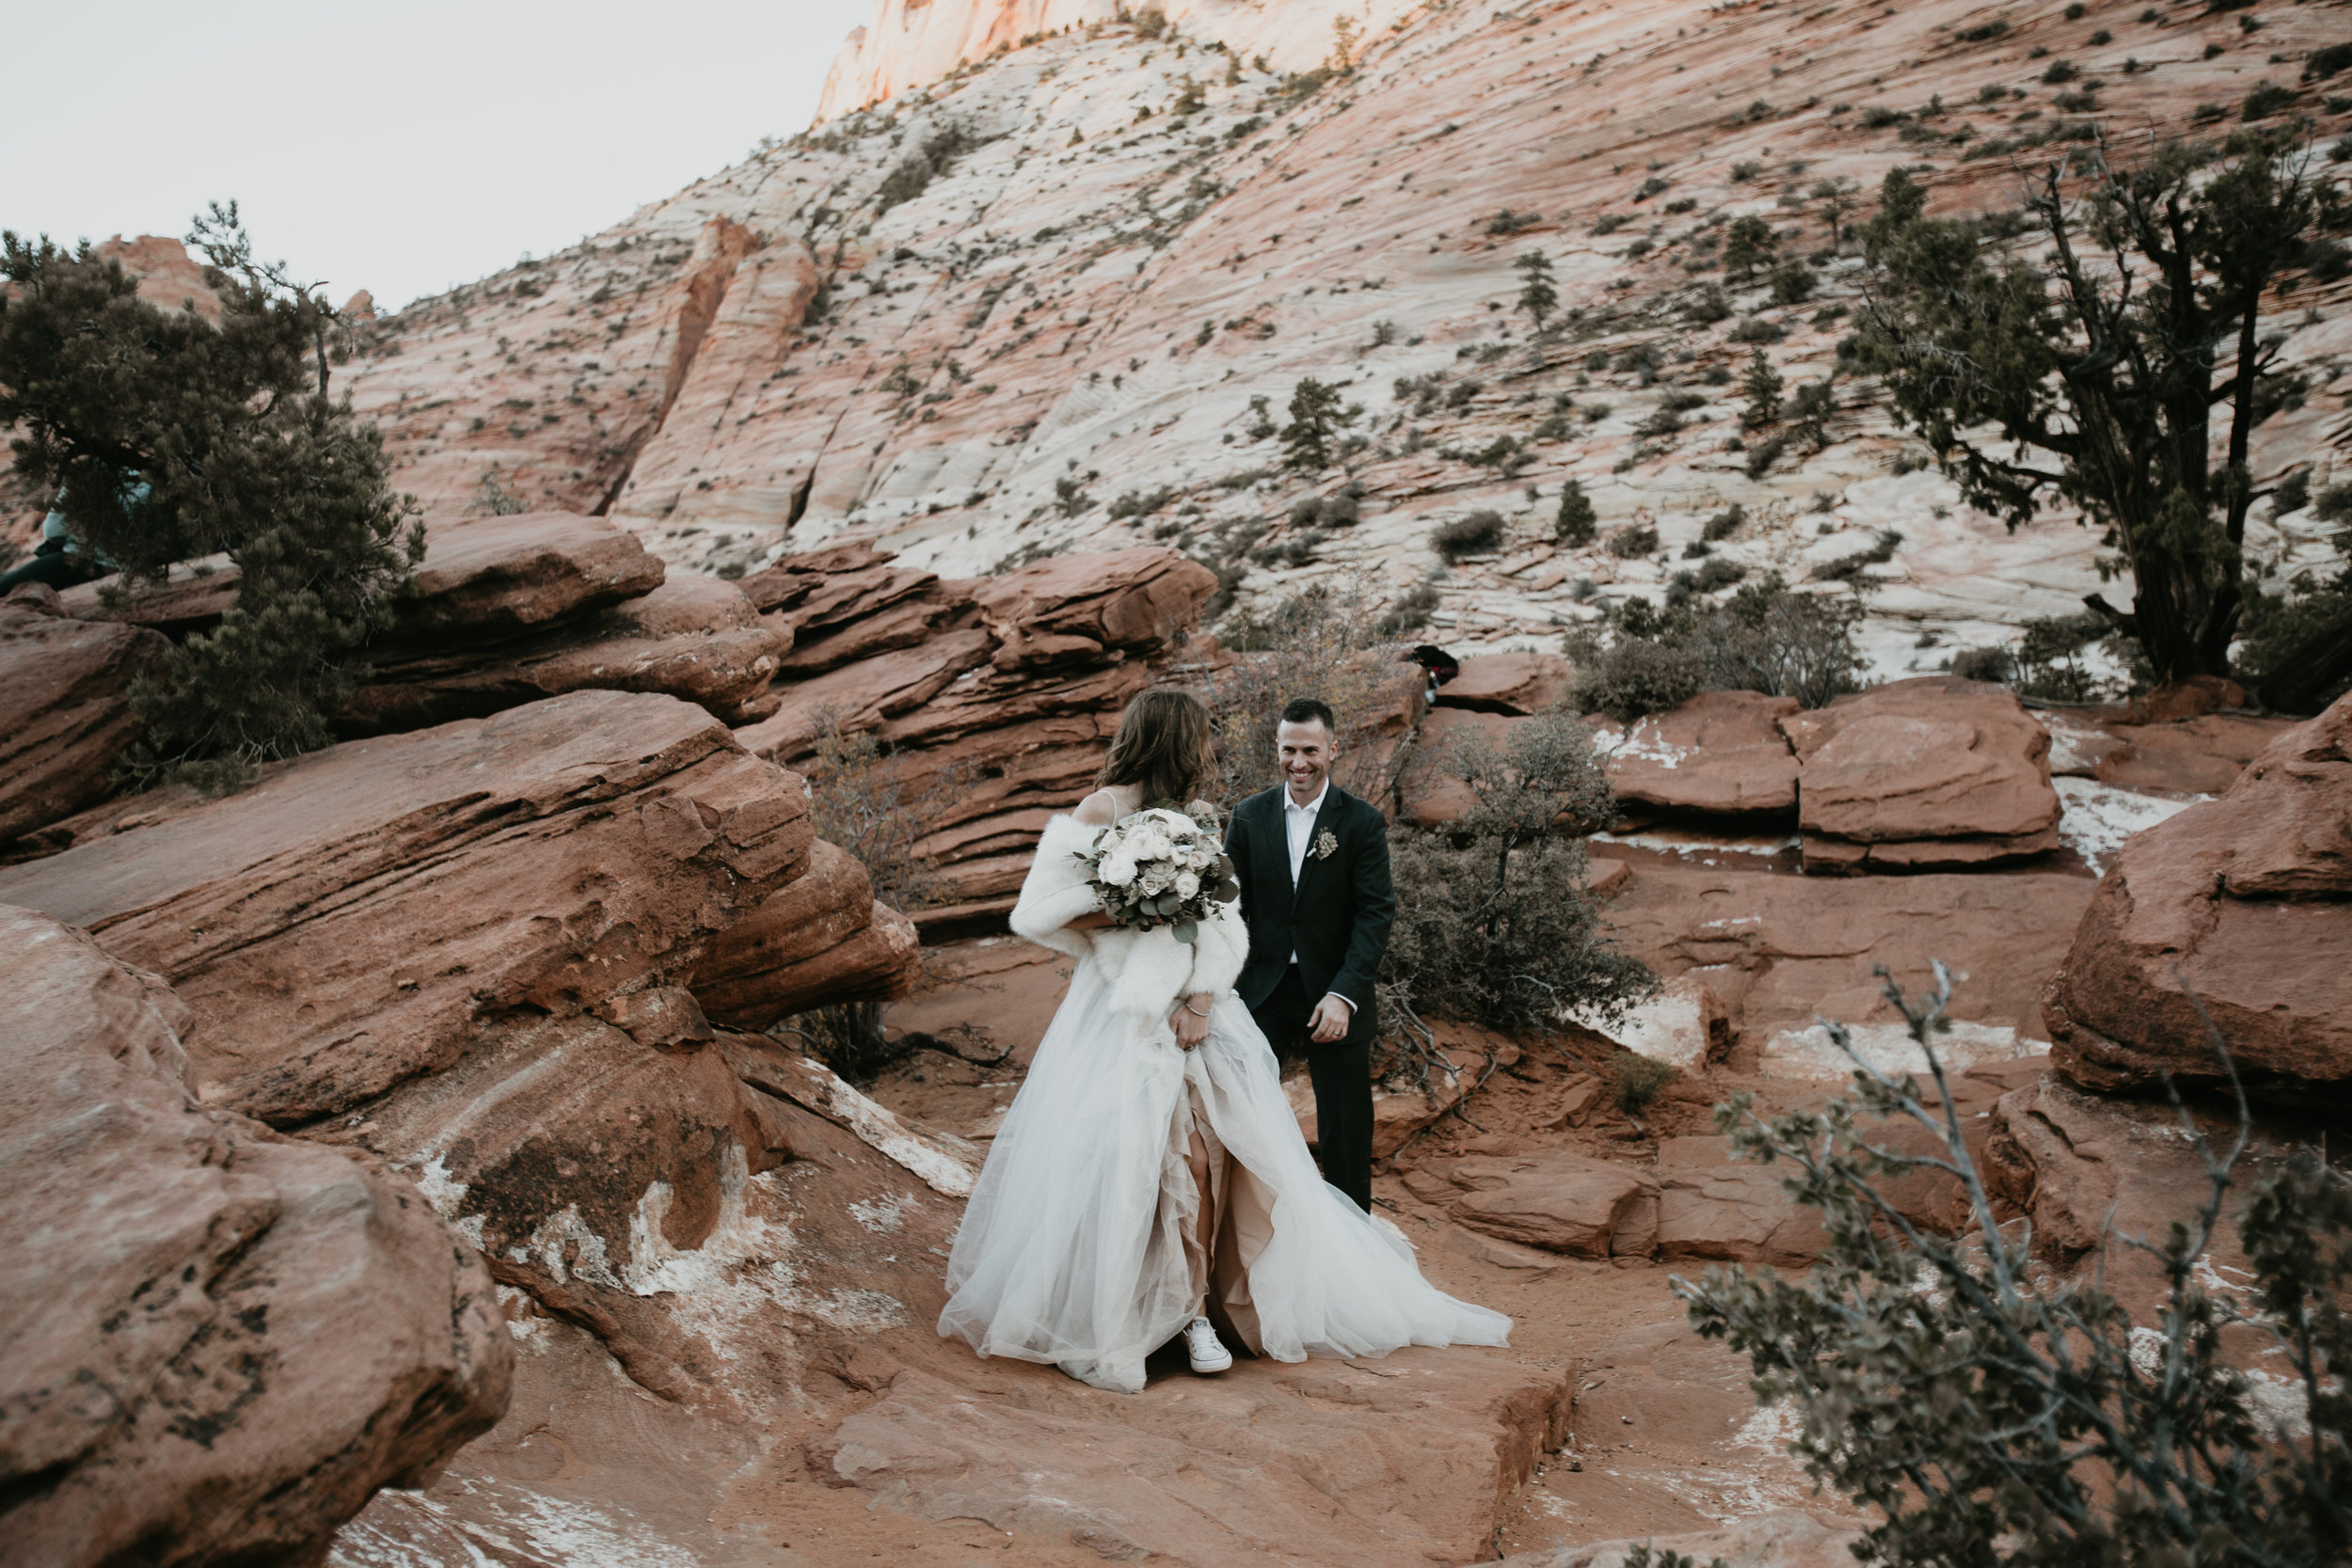 nicole-daacke-photography-zion-national-park-elopement-photographer-canyon-overlook-trail-elope-hiking-adventure-wedding-photos-fall-utah-red-rock-canyon-stgeorge-eloping-photographer-74.jpg